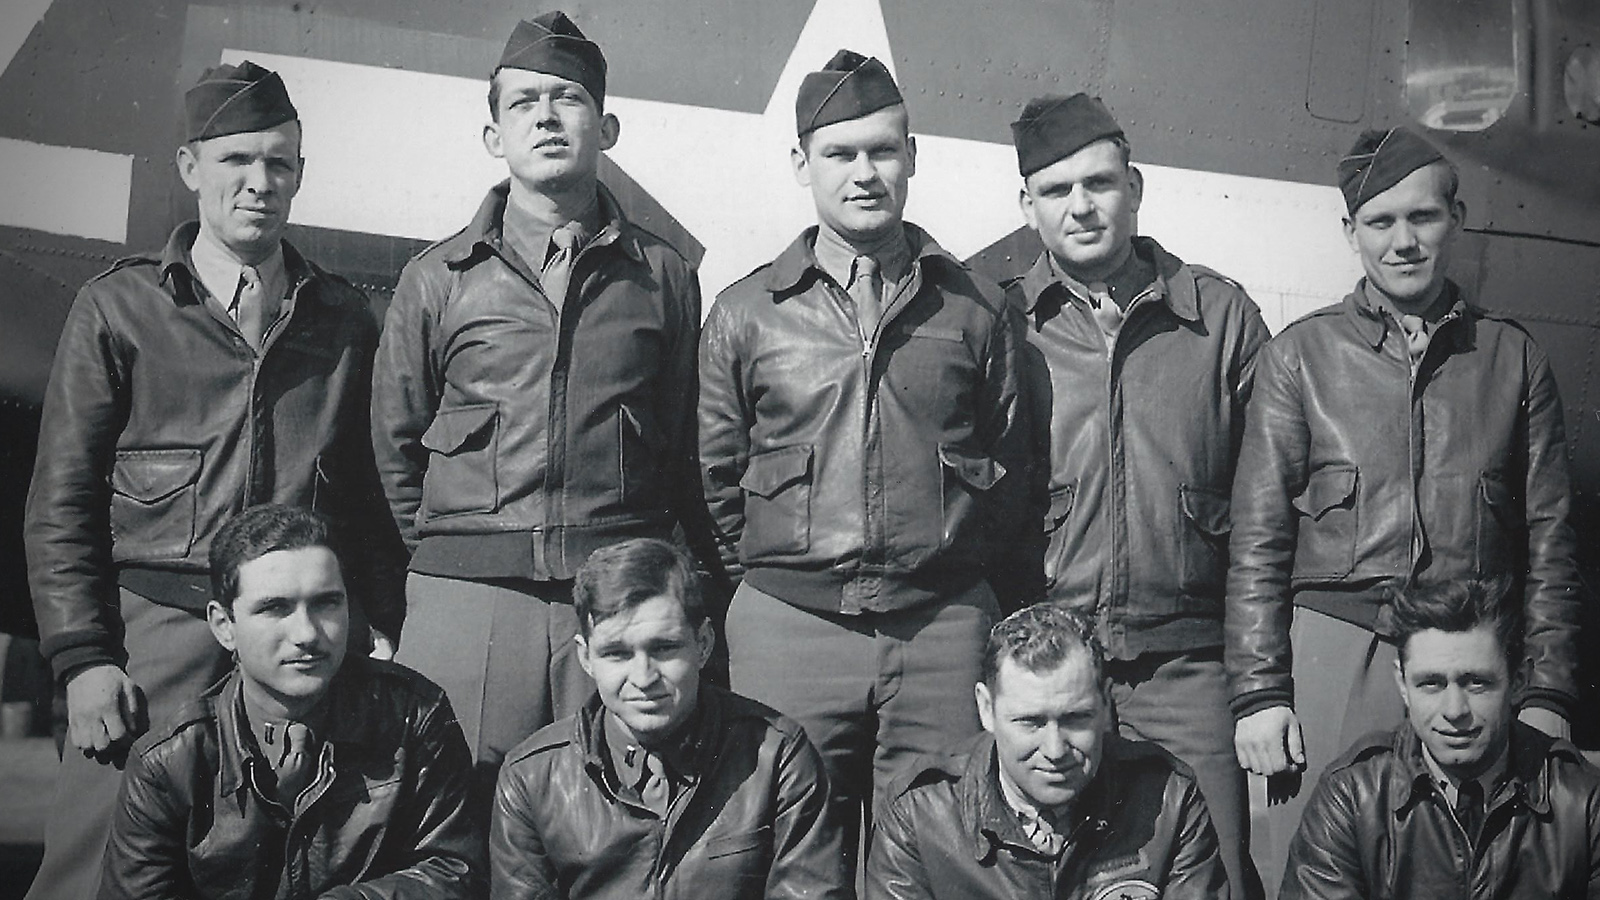 390th Bomb Group Crew #38 (Isaac Leslie Hightower is the second from the left on the bottom row)